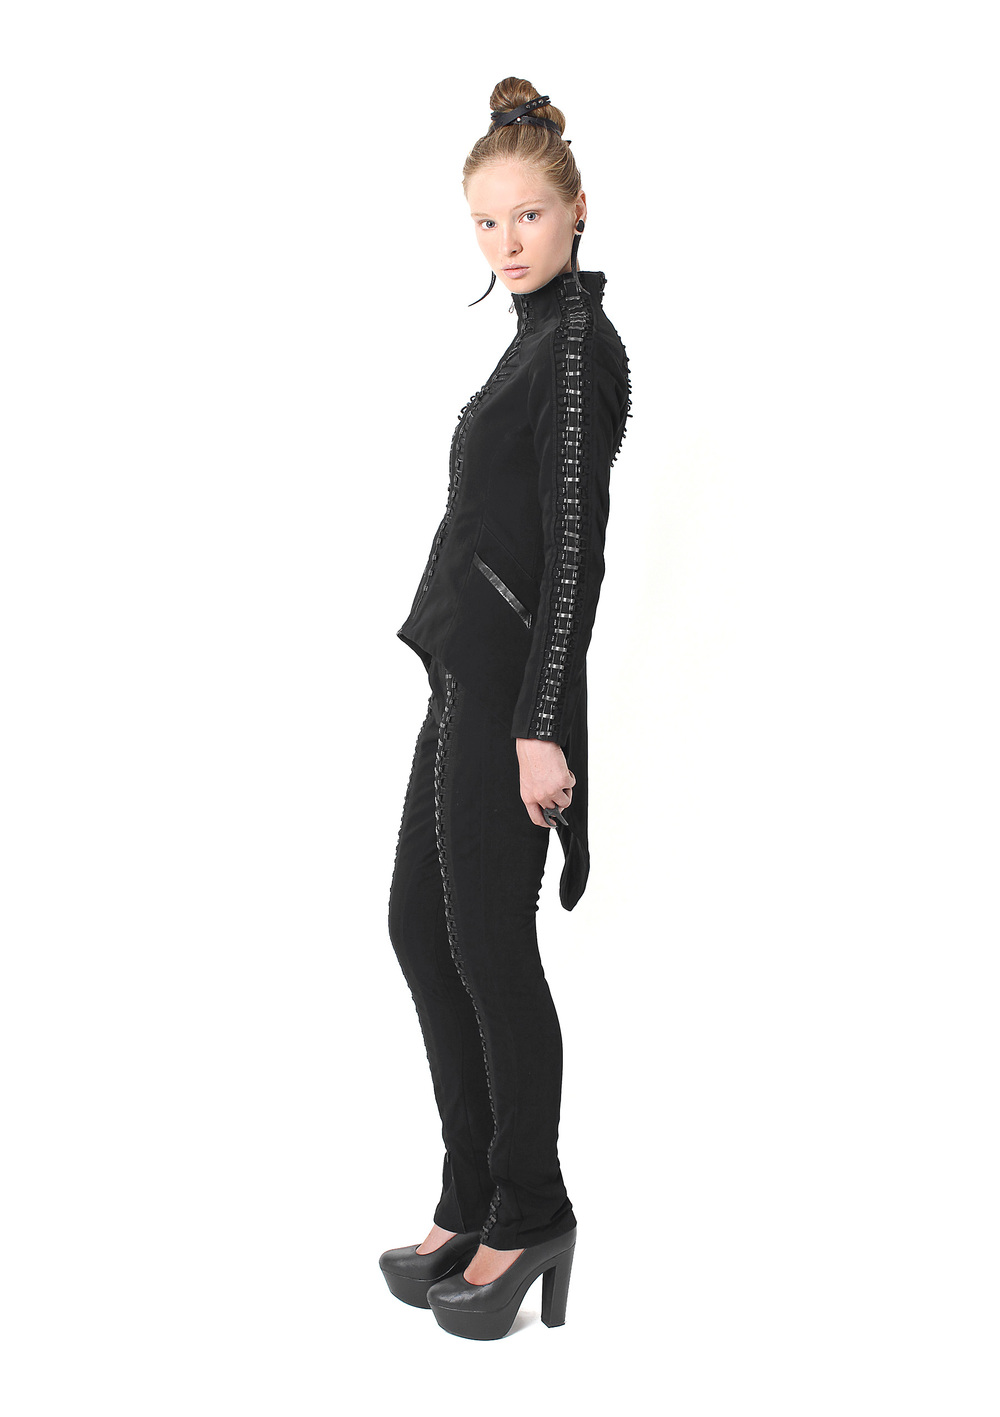 Stagger Laced Jacket 2.jpg